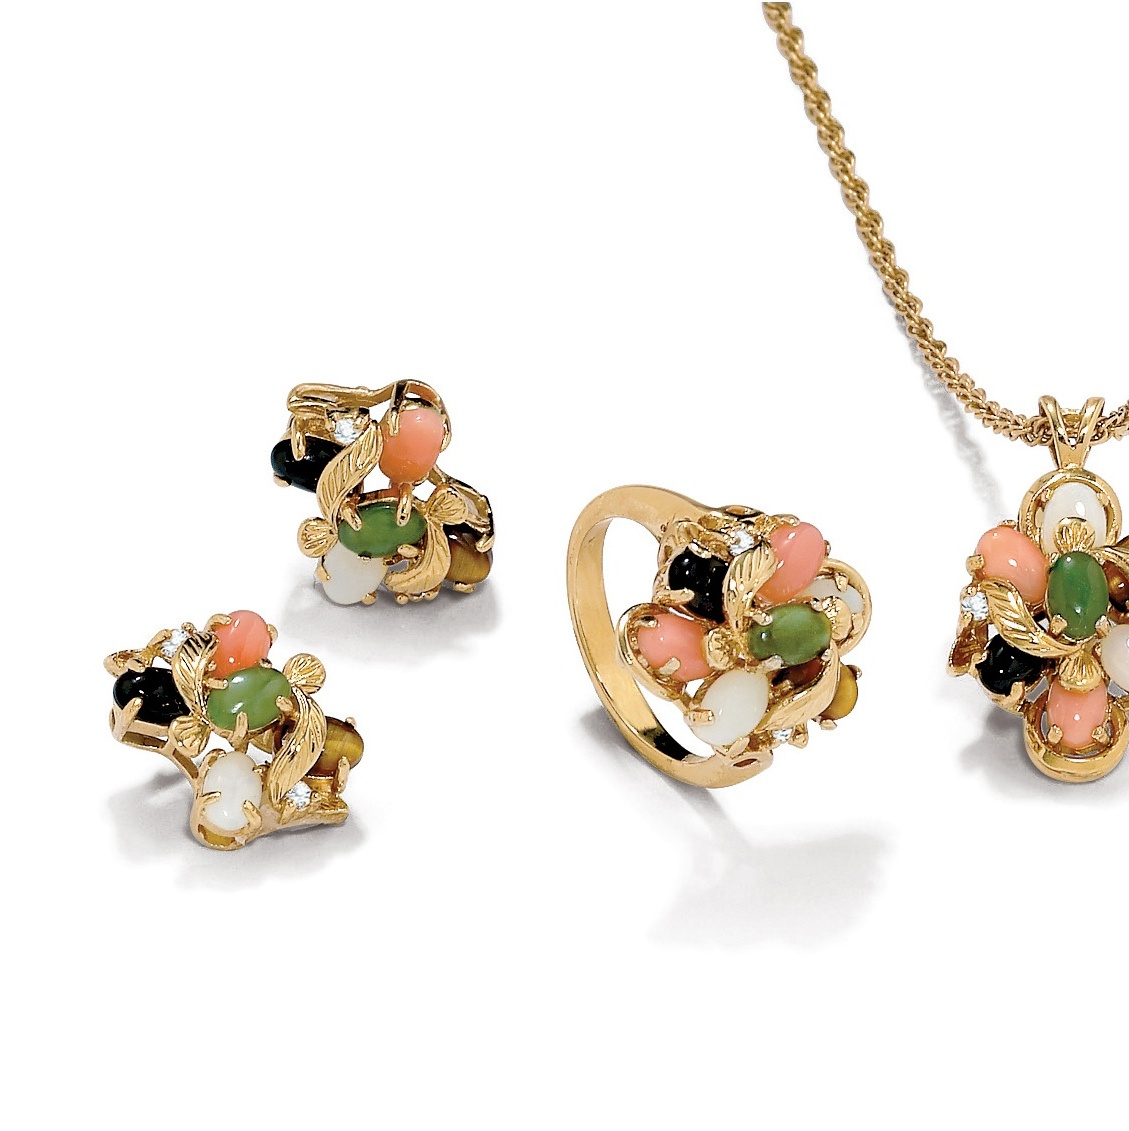 Genuine Coral, Opal, Jade, Onyx, Tiger's-Eye 14k Gold-Plated Necklace, Earrings and Ring Set by PalmBeach Jewelry